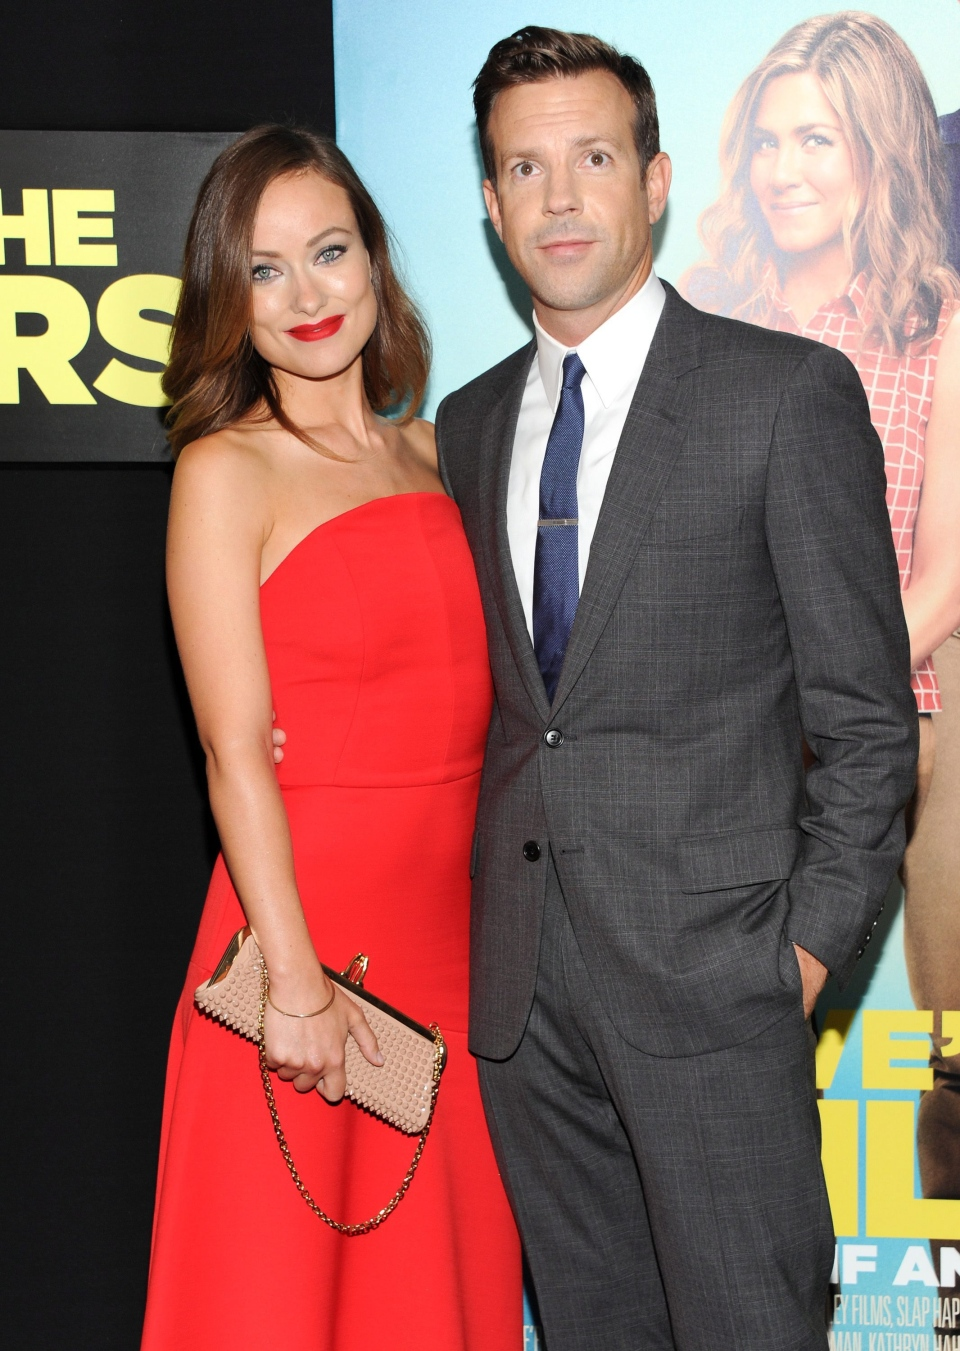 Actor Jason Sudeikis, right, and his fiancee Olivia Wilde attend the world premiere of 'We're the Millers' at the Ziegfeld Theatre in New York on Thursday, Aug. 1, 2013. (Evan Agostini/Invision)